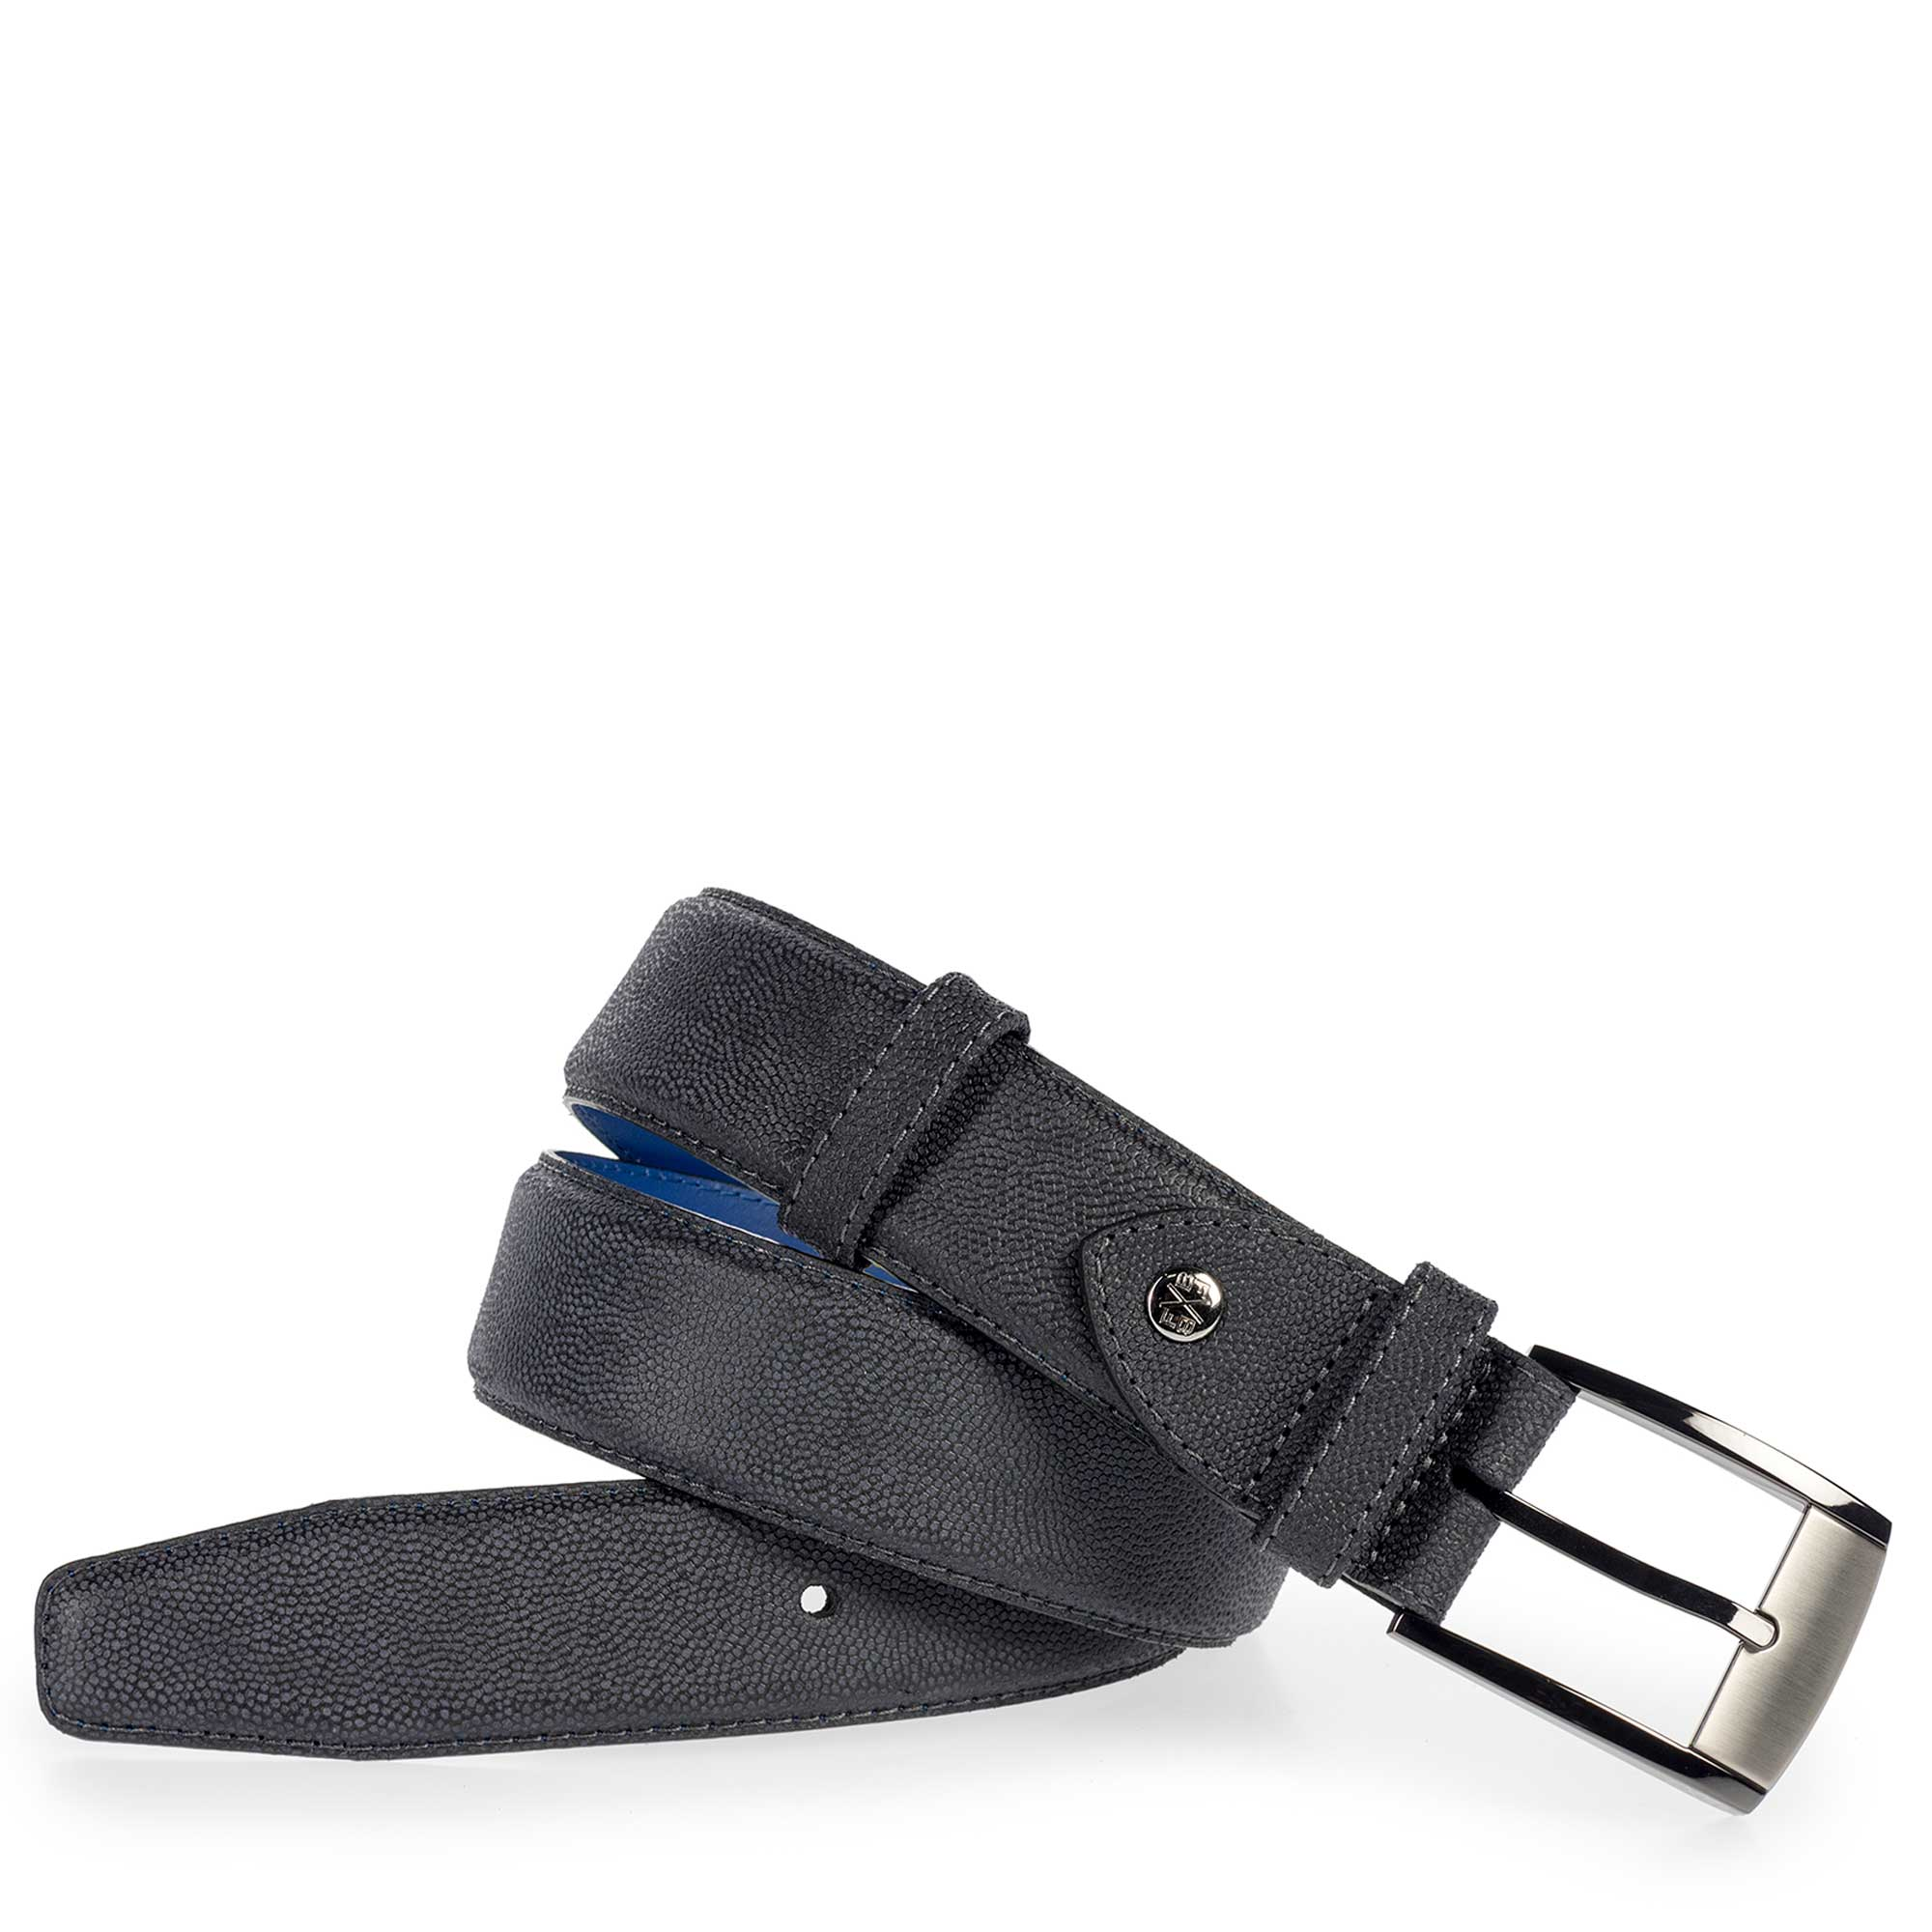 75180/06 - Darkblue suede leather belt with pattern